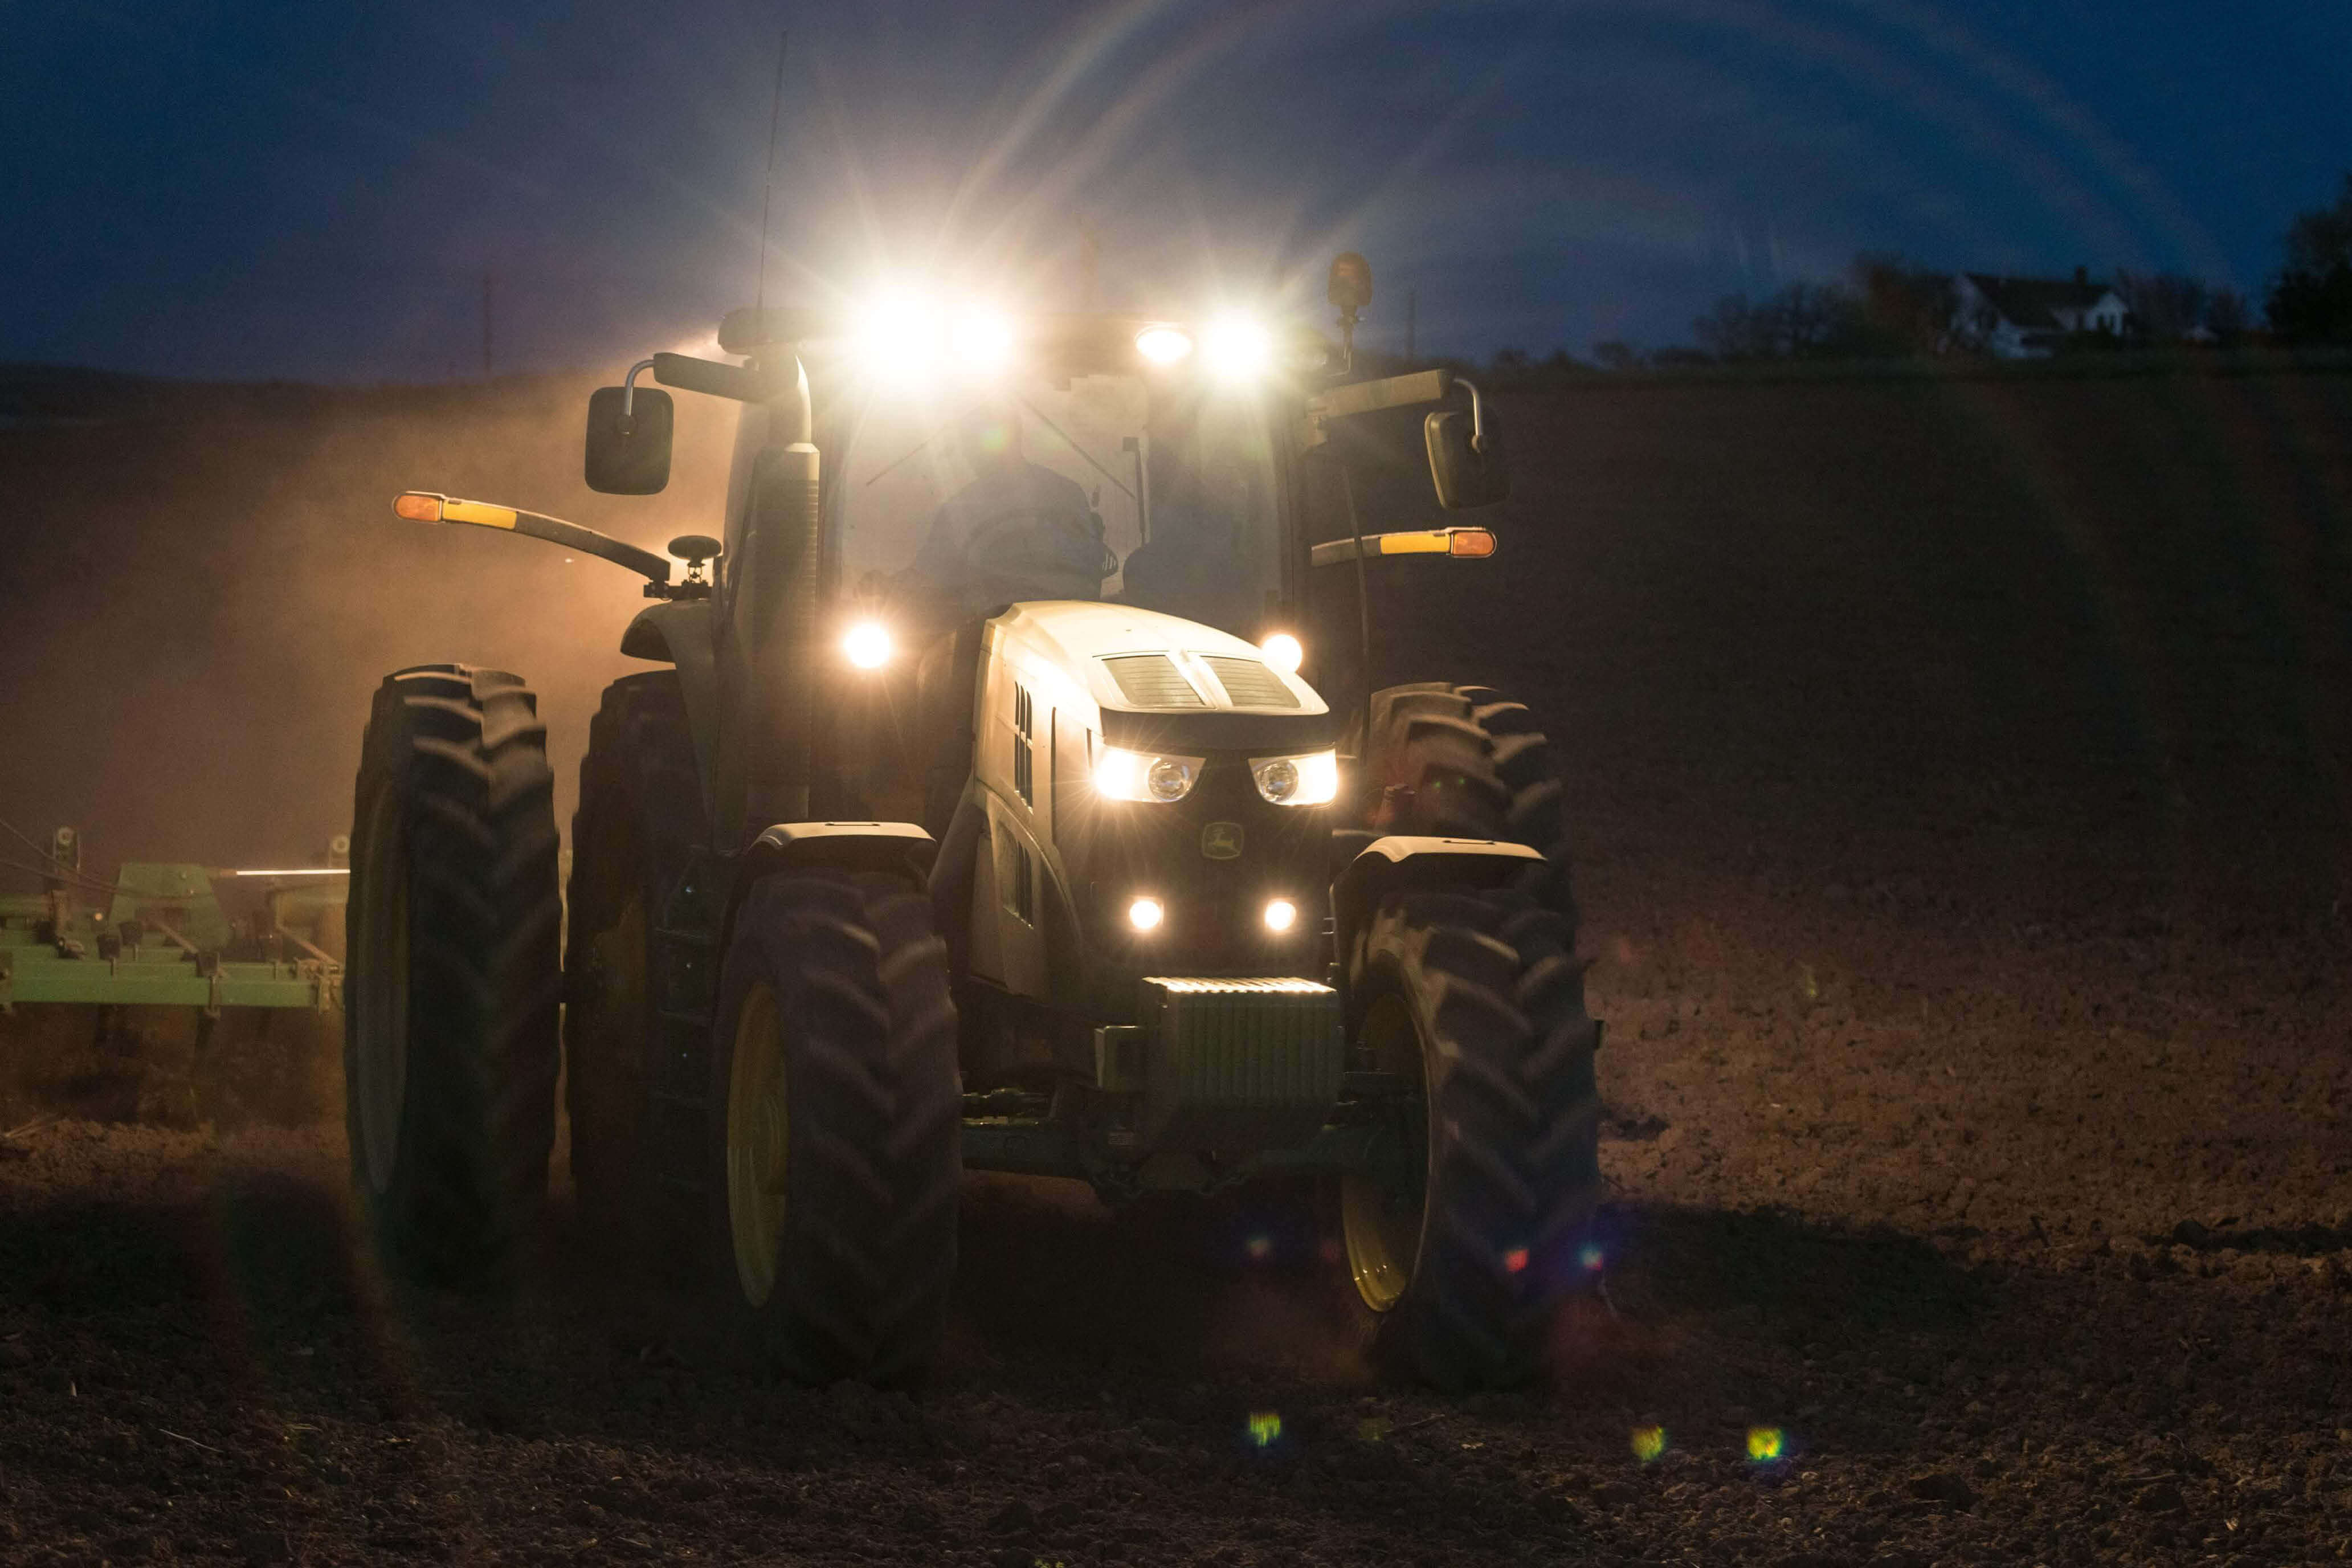 iStock-475941746_Tractor at night compressed